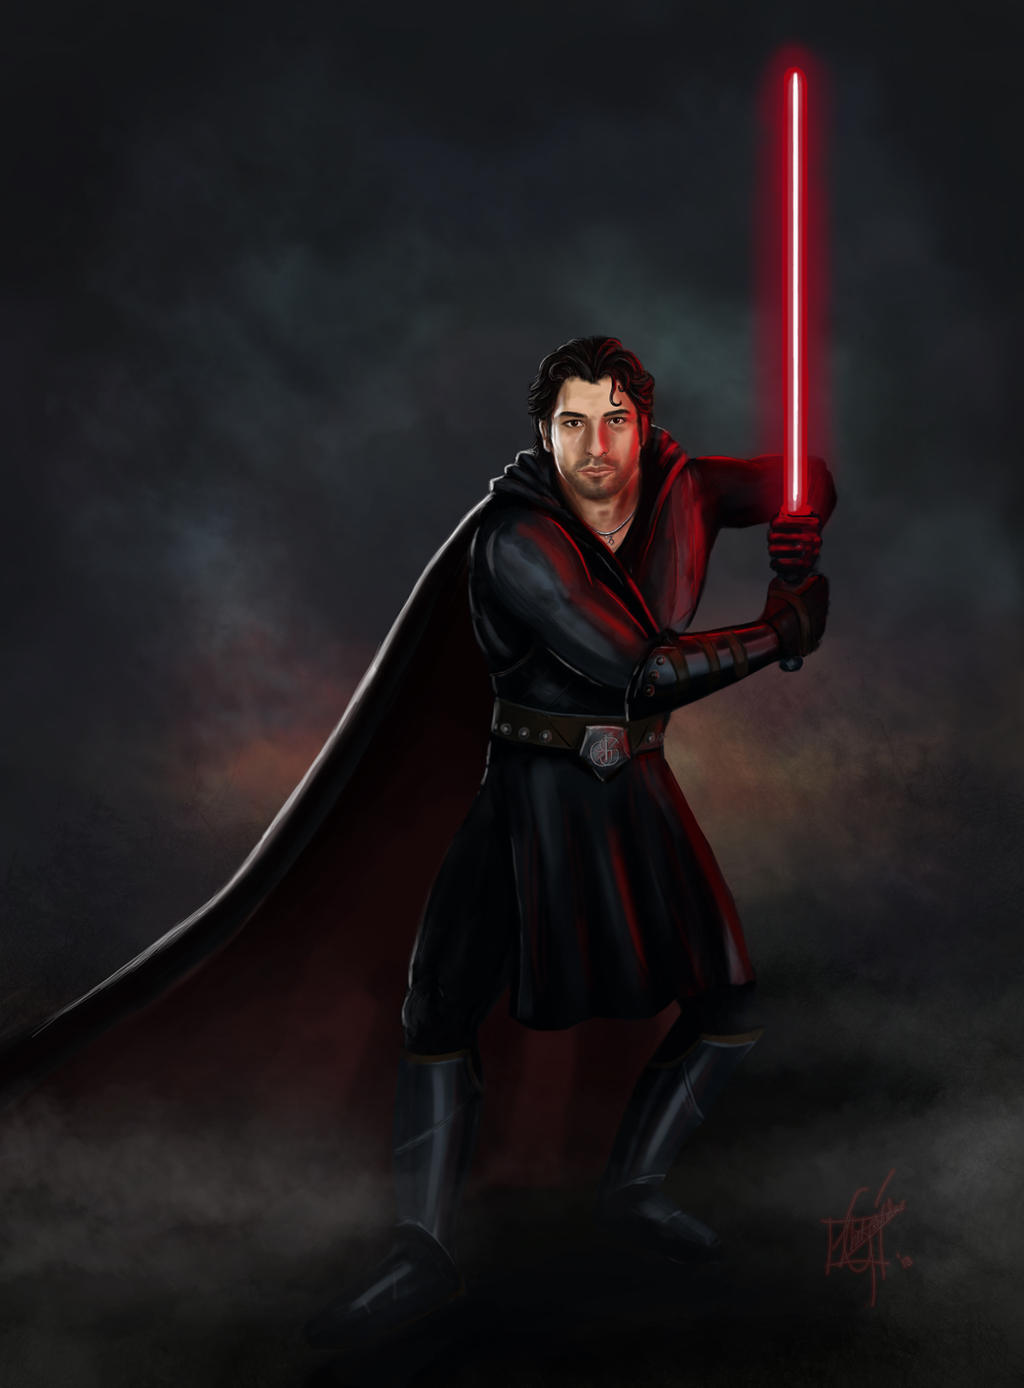 sith_lord_by_gs_arts-d5r0wxd.jpg